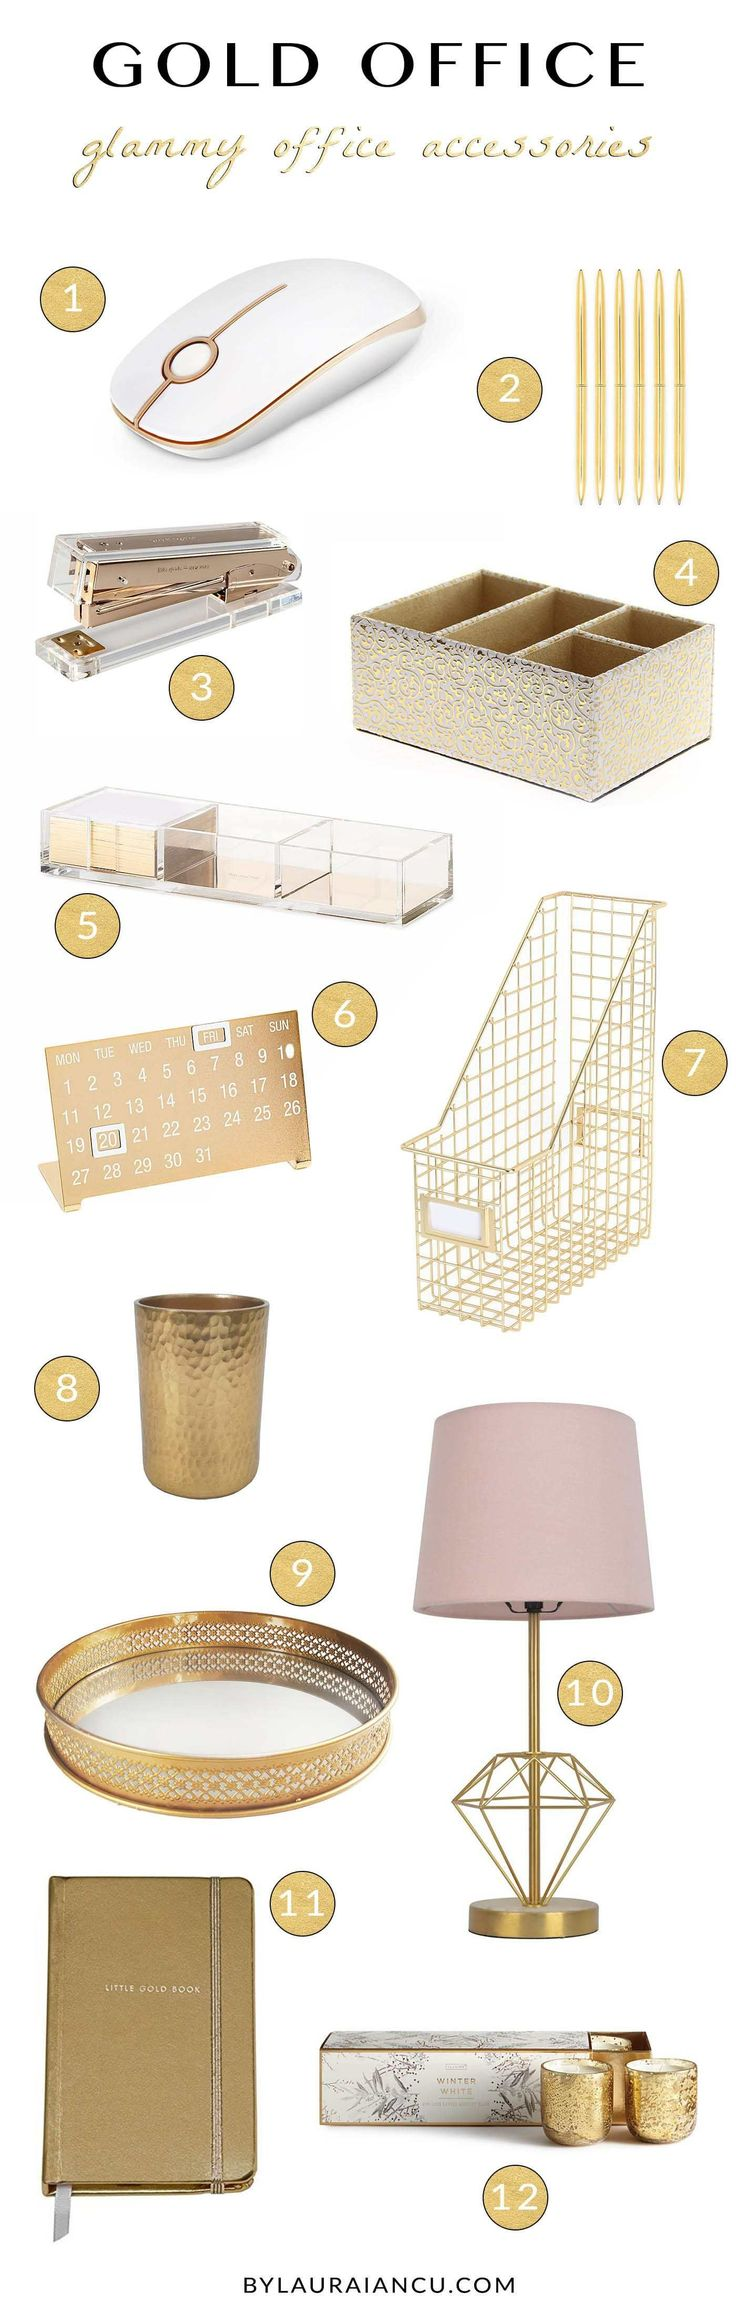 Home office ideas for a super chic desk. LOVE all these gold office accessories and supplies. Office design inspiration for work from home women, bloggers, entrepreneurs, etc.